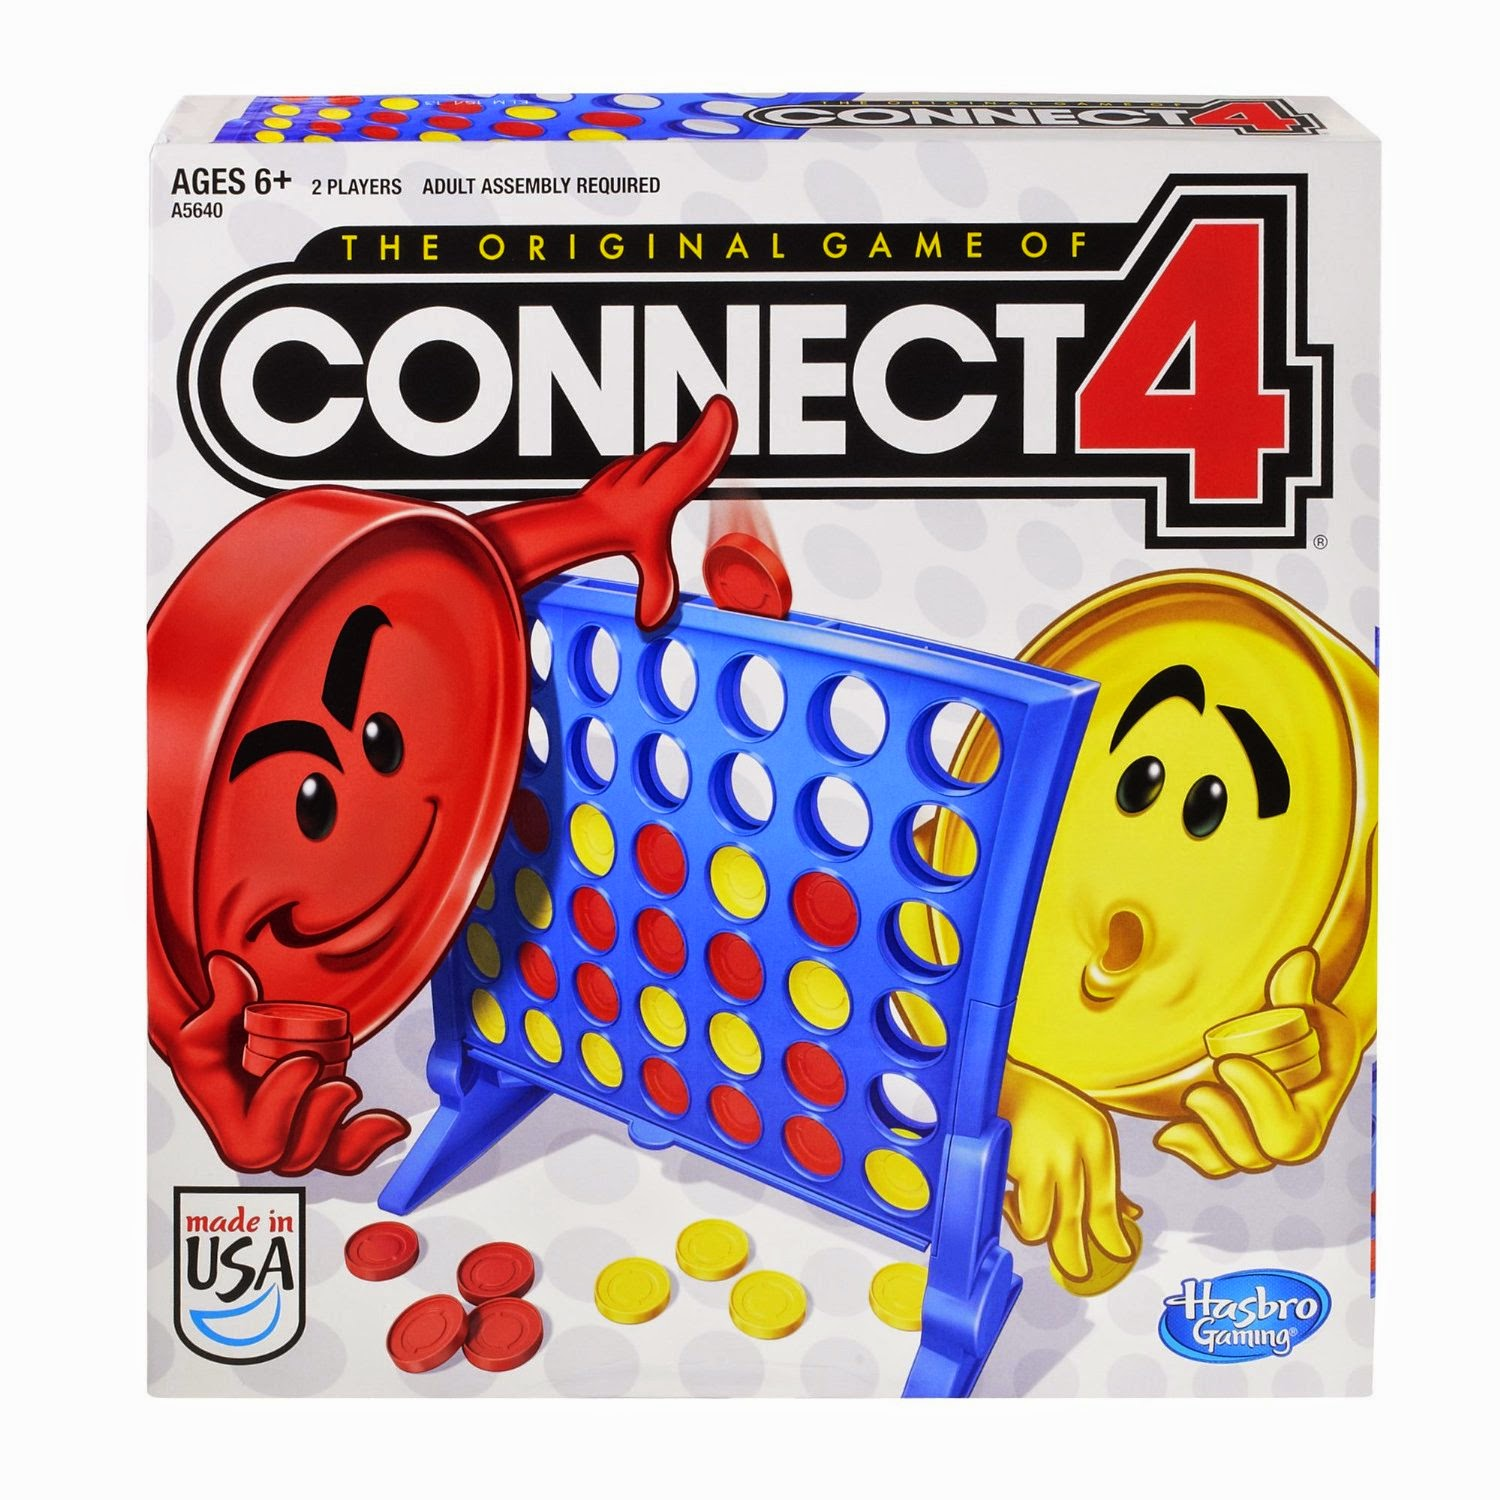 Connect 4 Game is An impressive Toy